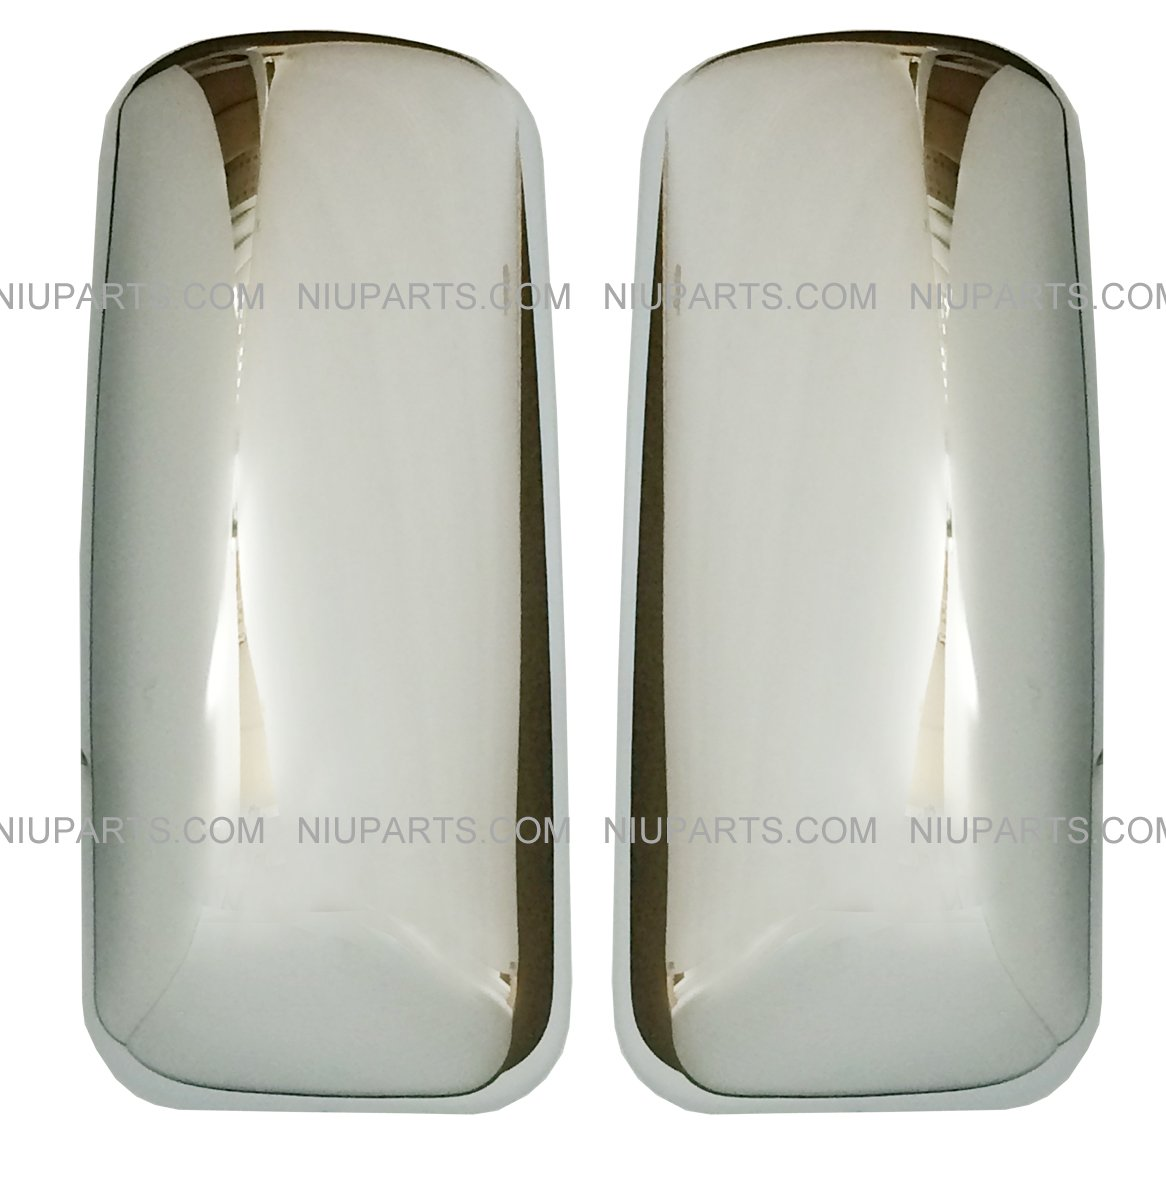 Kenworth T660 Door Mirror Cover Chrome - Driver and Passenger Side by NIUPARTS